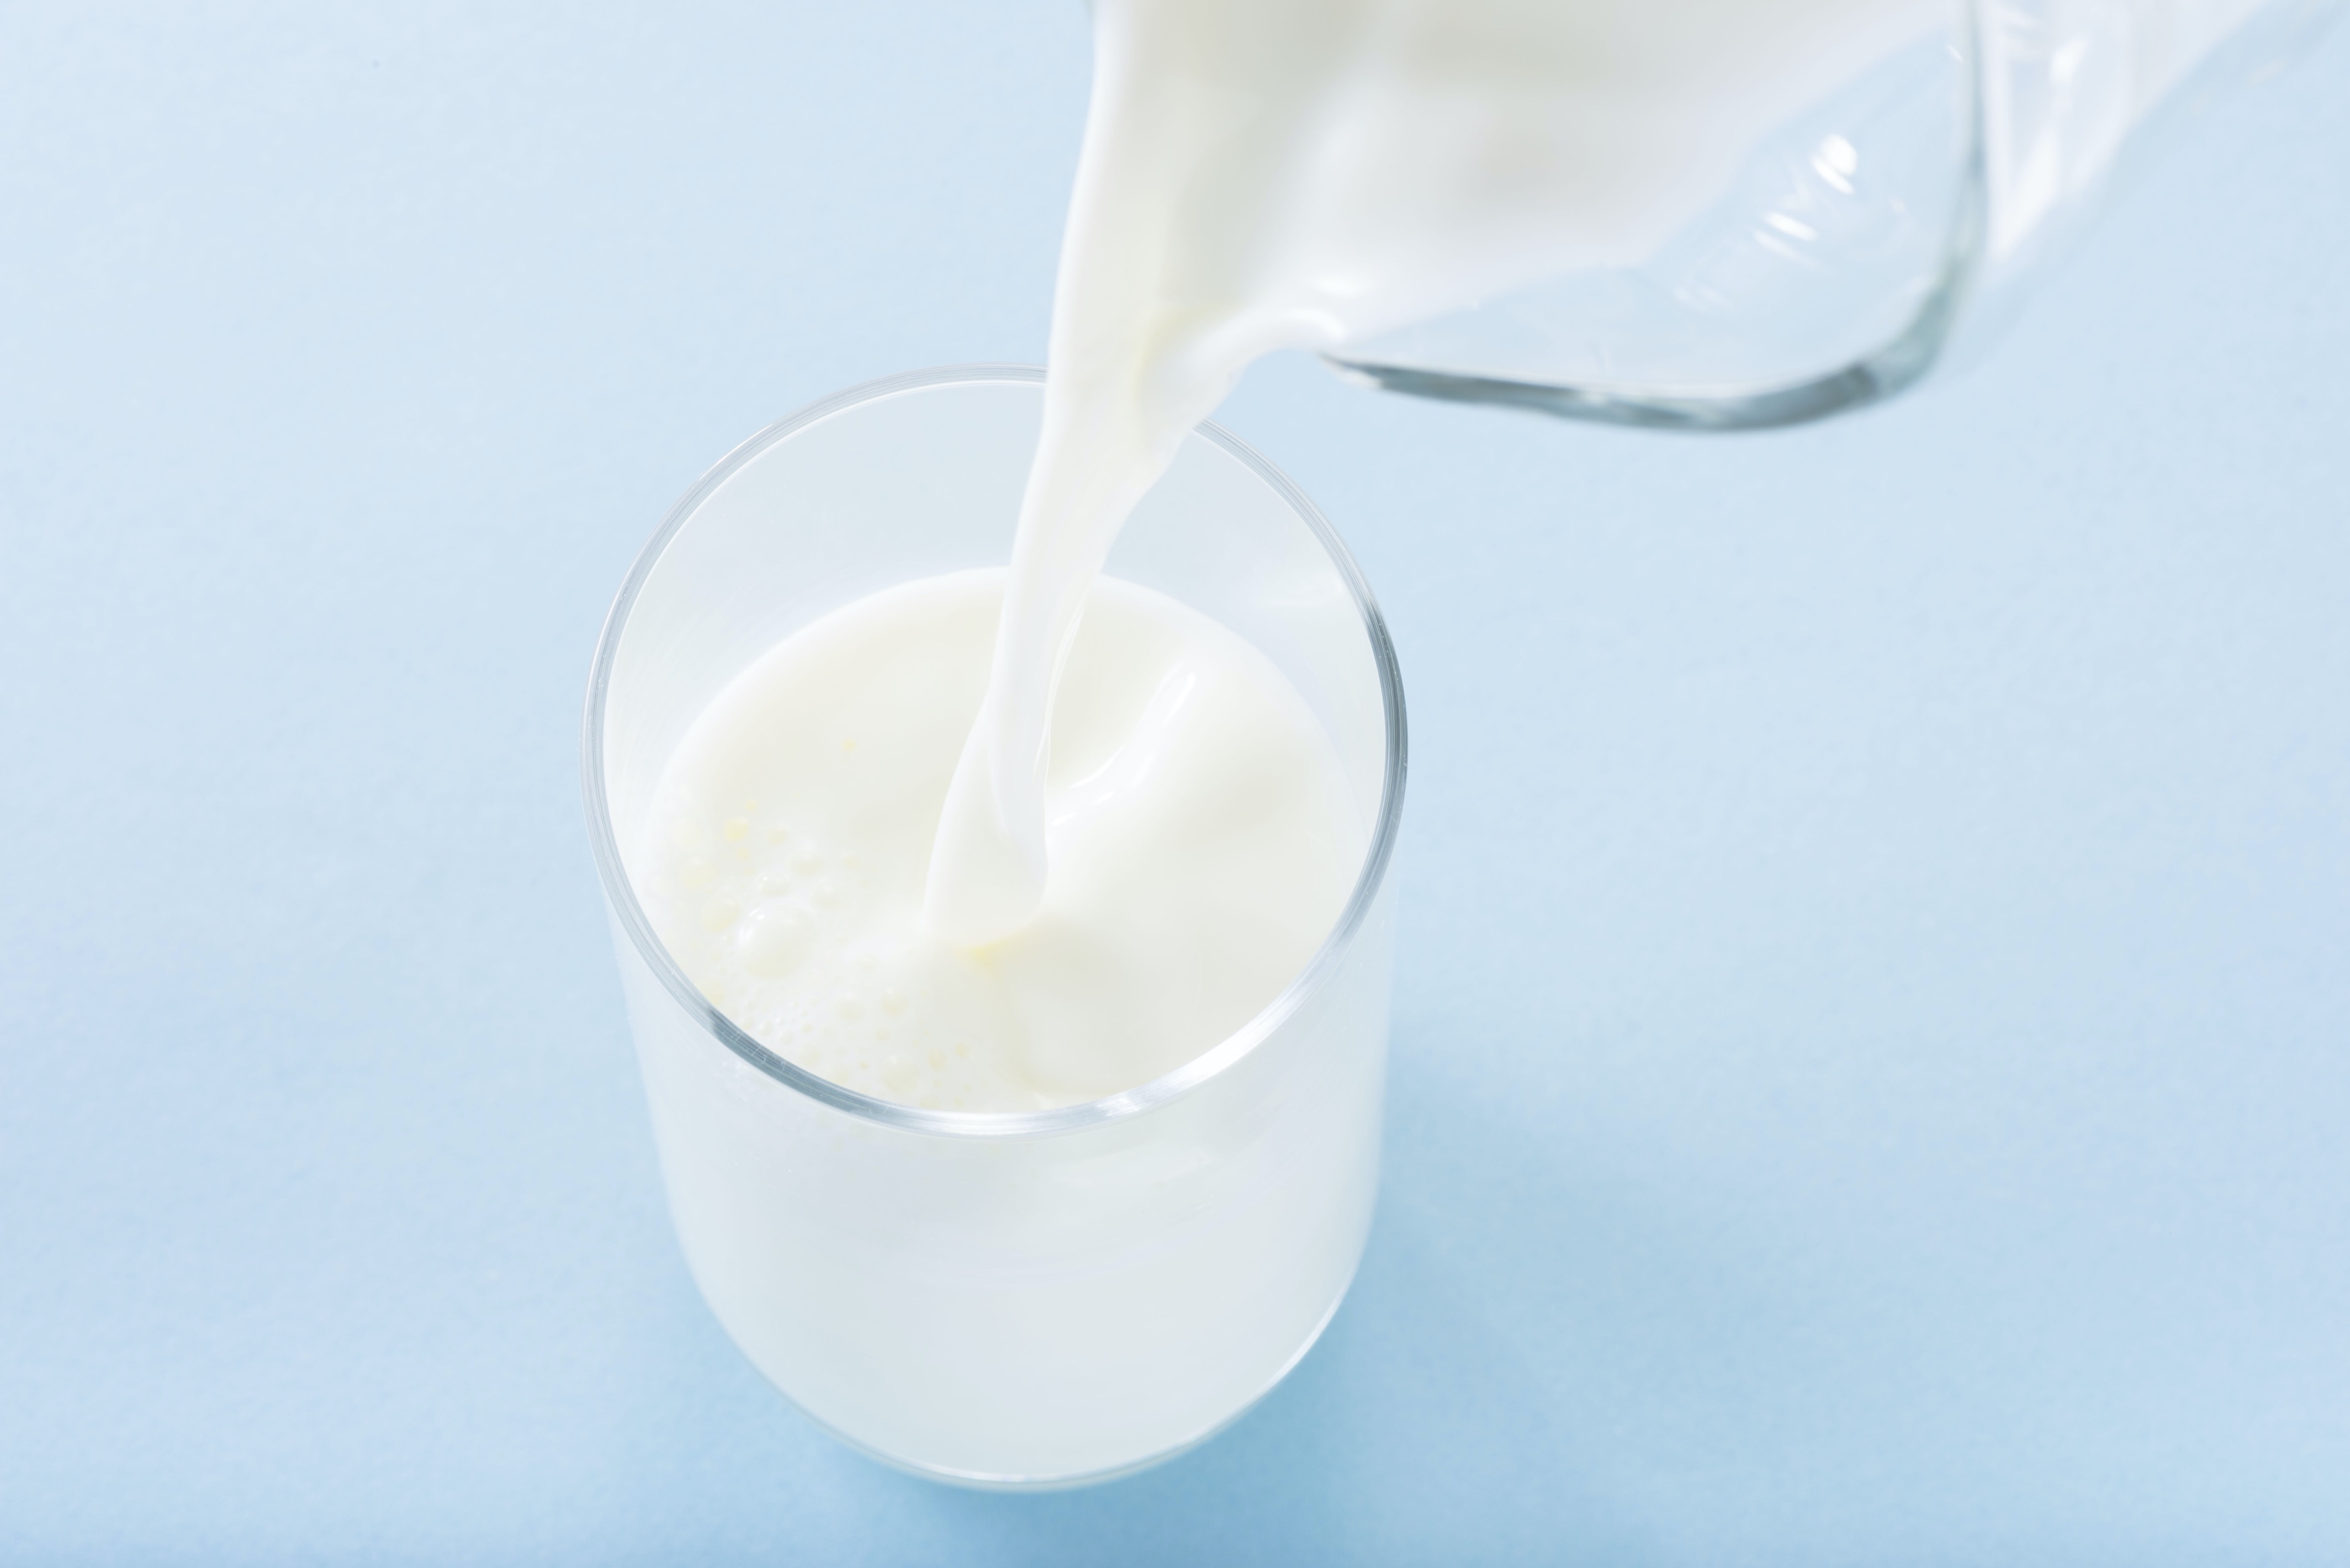 milk glass linoleic acid cancer daily conjugated diabetes cla fighter drink amoils hypertension reduce nus risk shape benefits study says